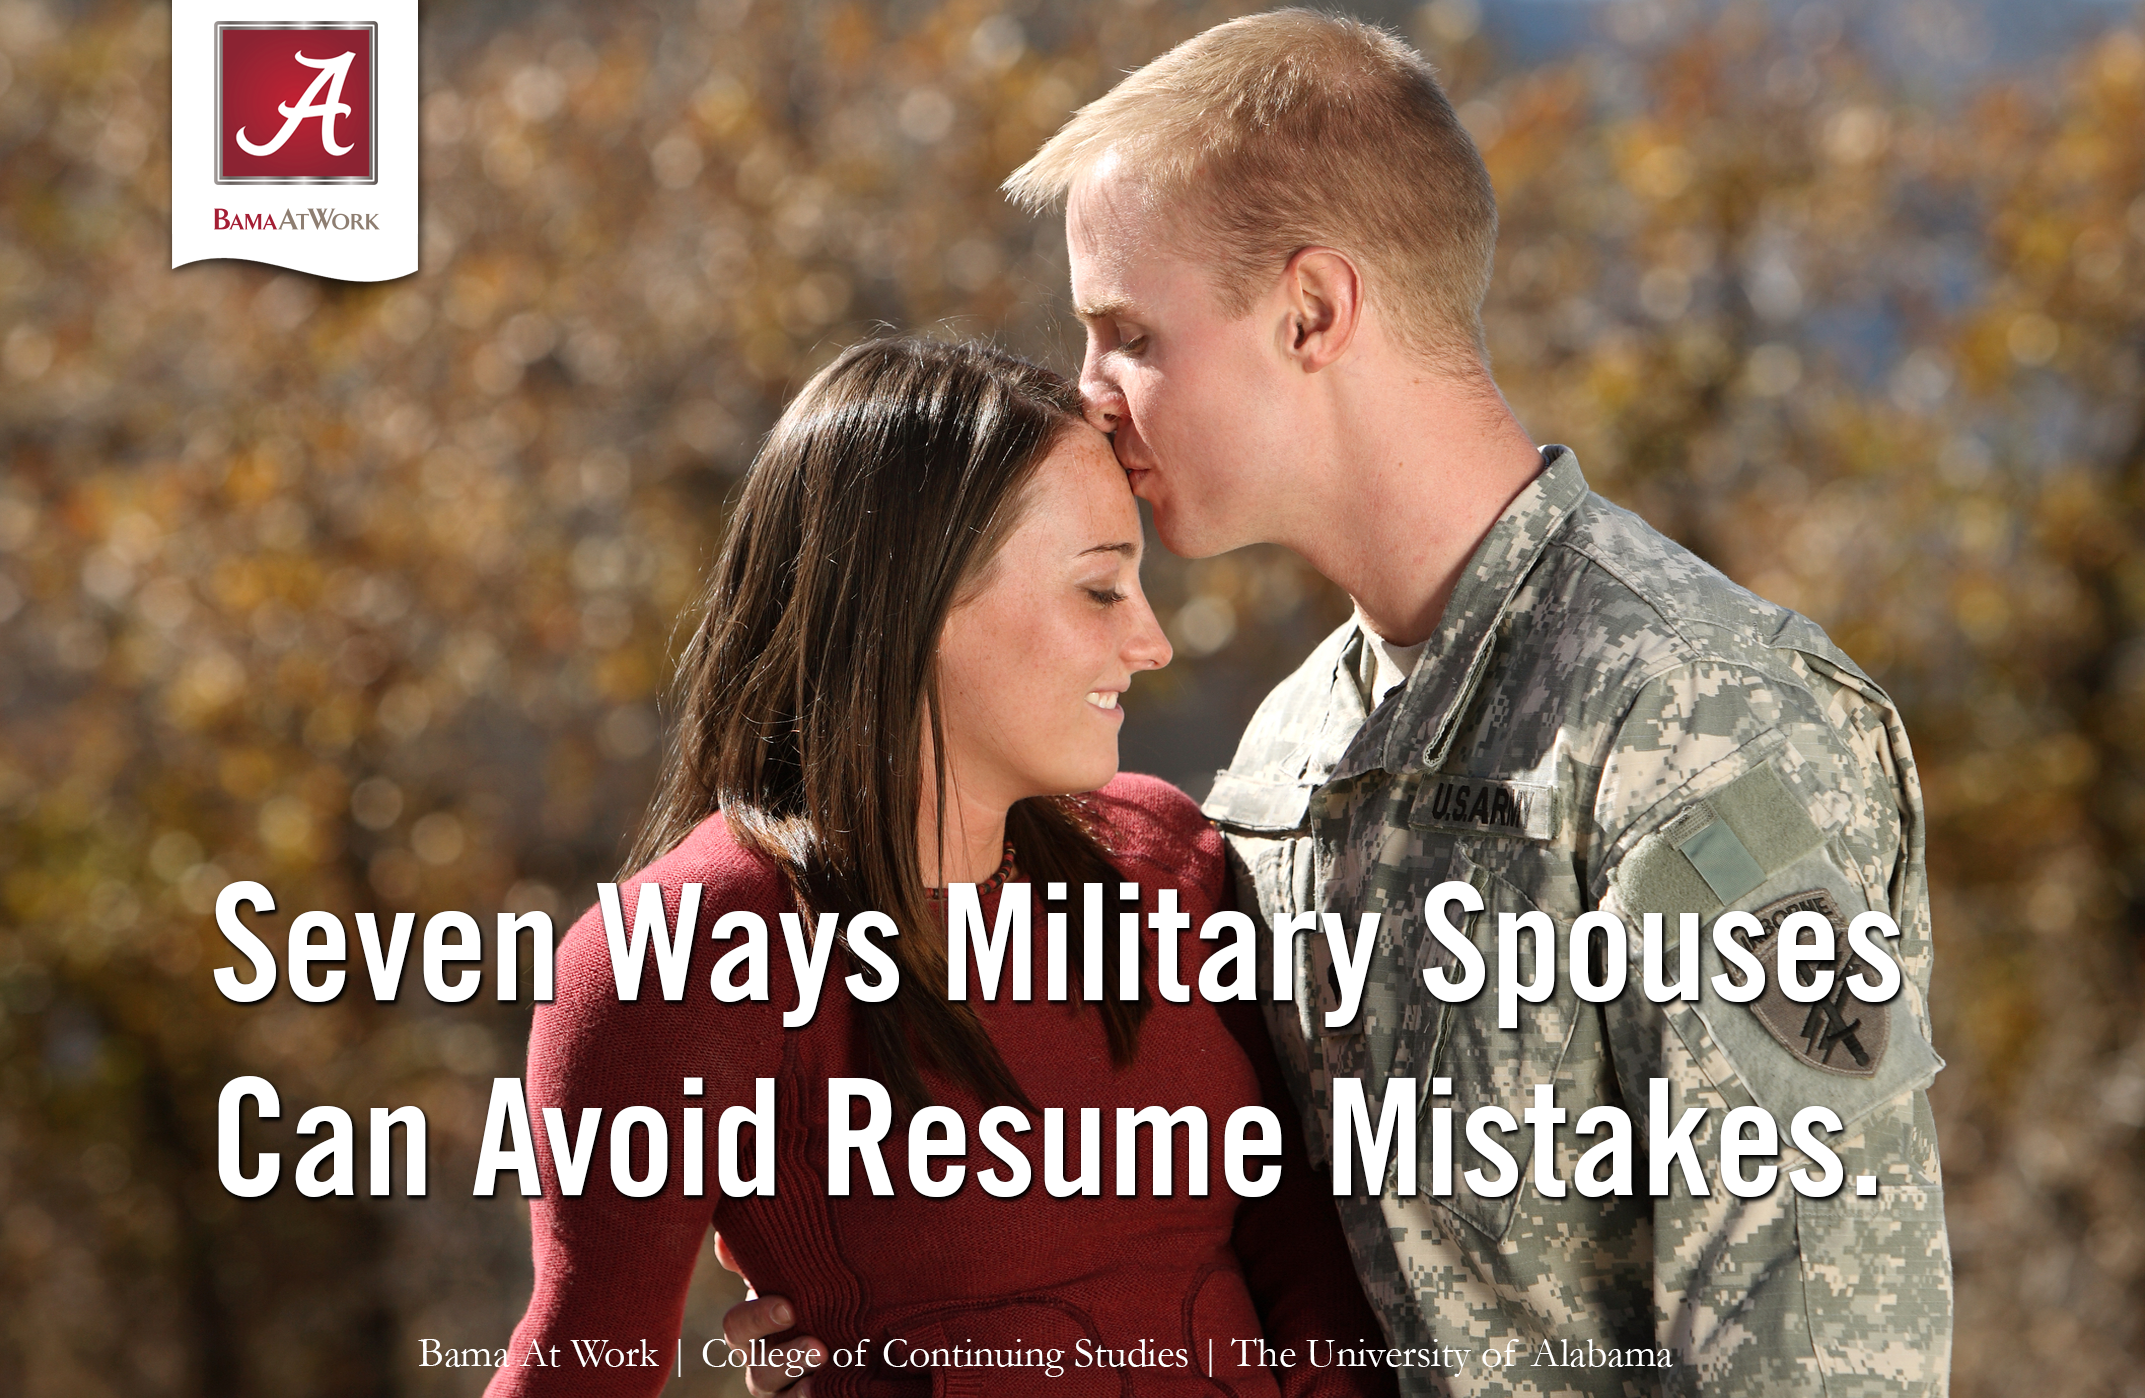 Where can i find i grant school if iam a military spouse?